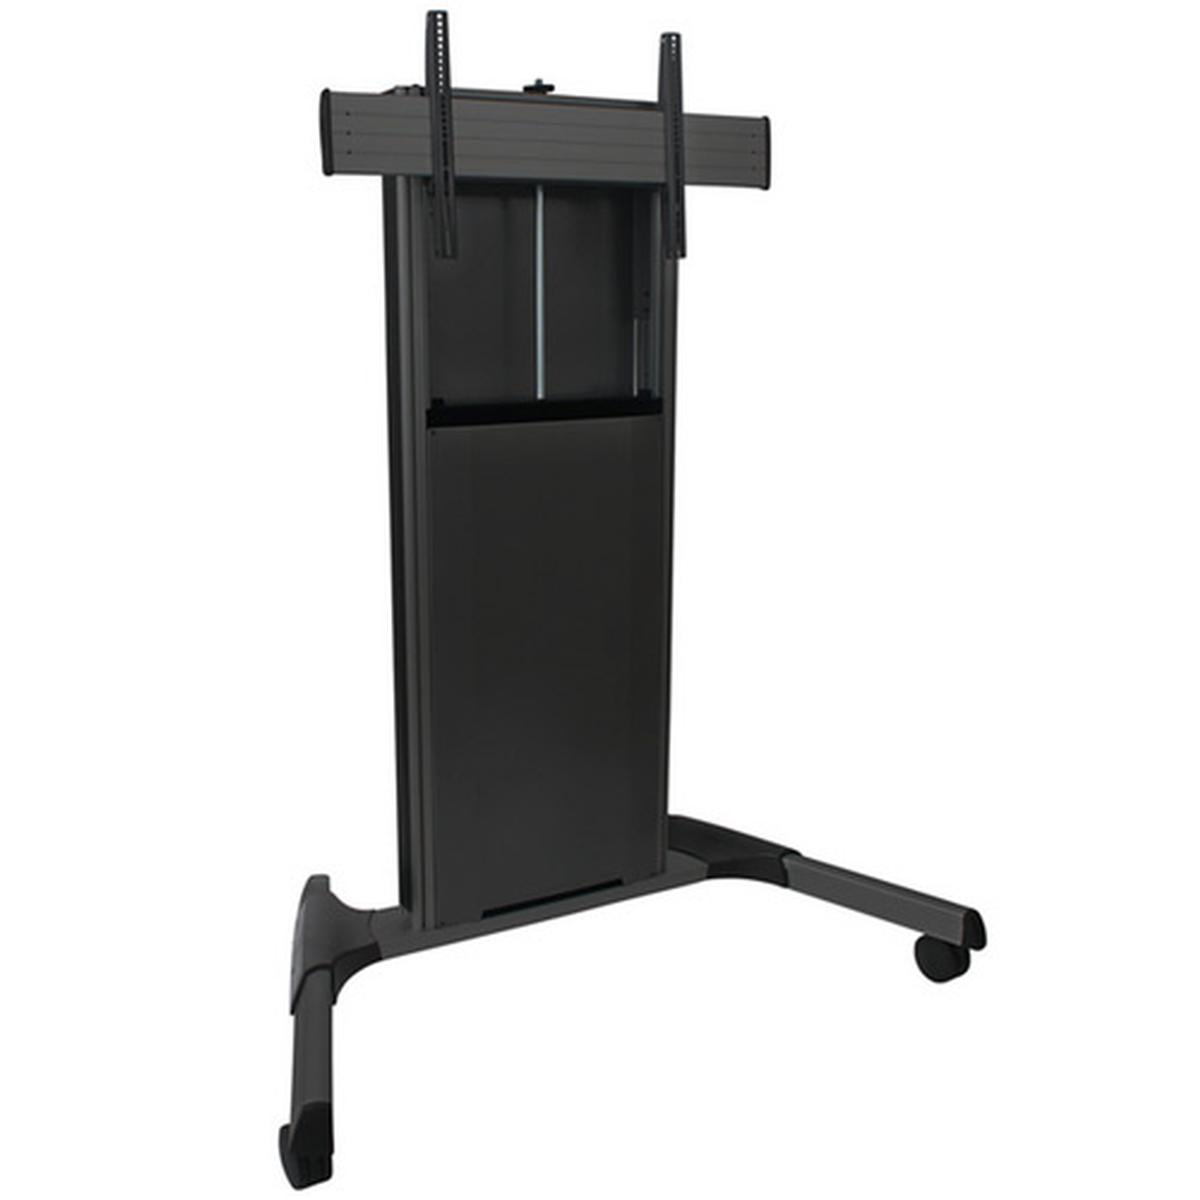 black mount cart shown - Av Cart